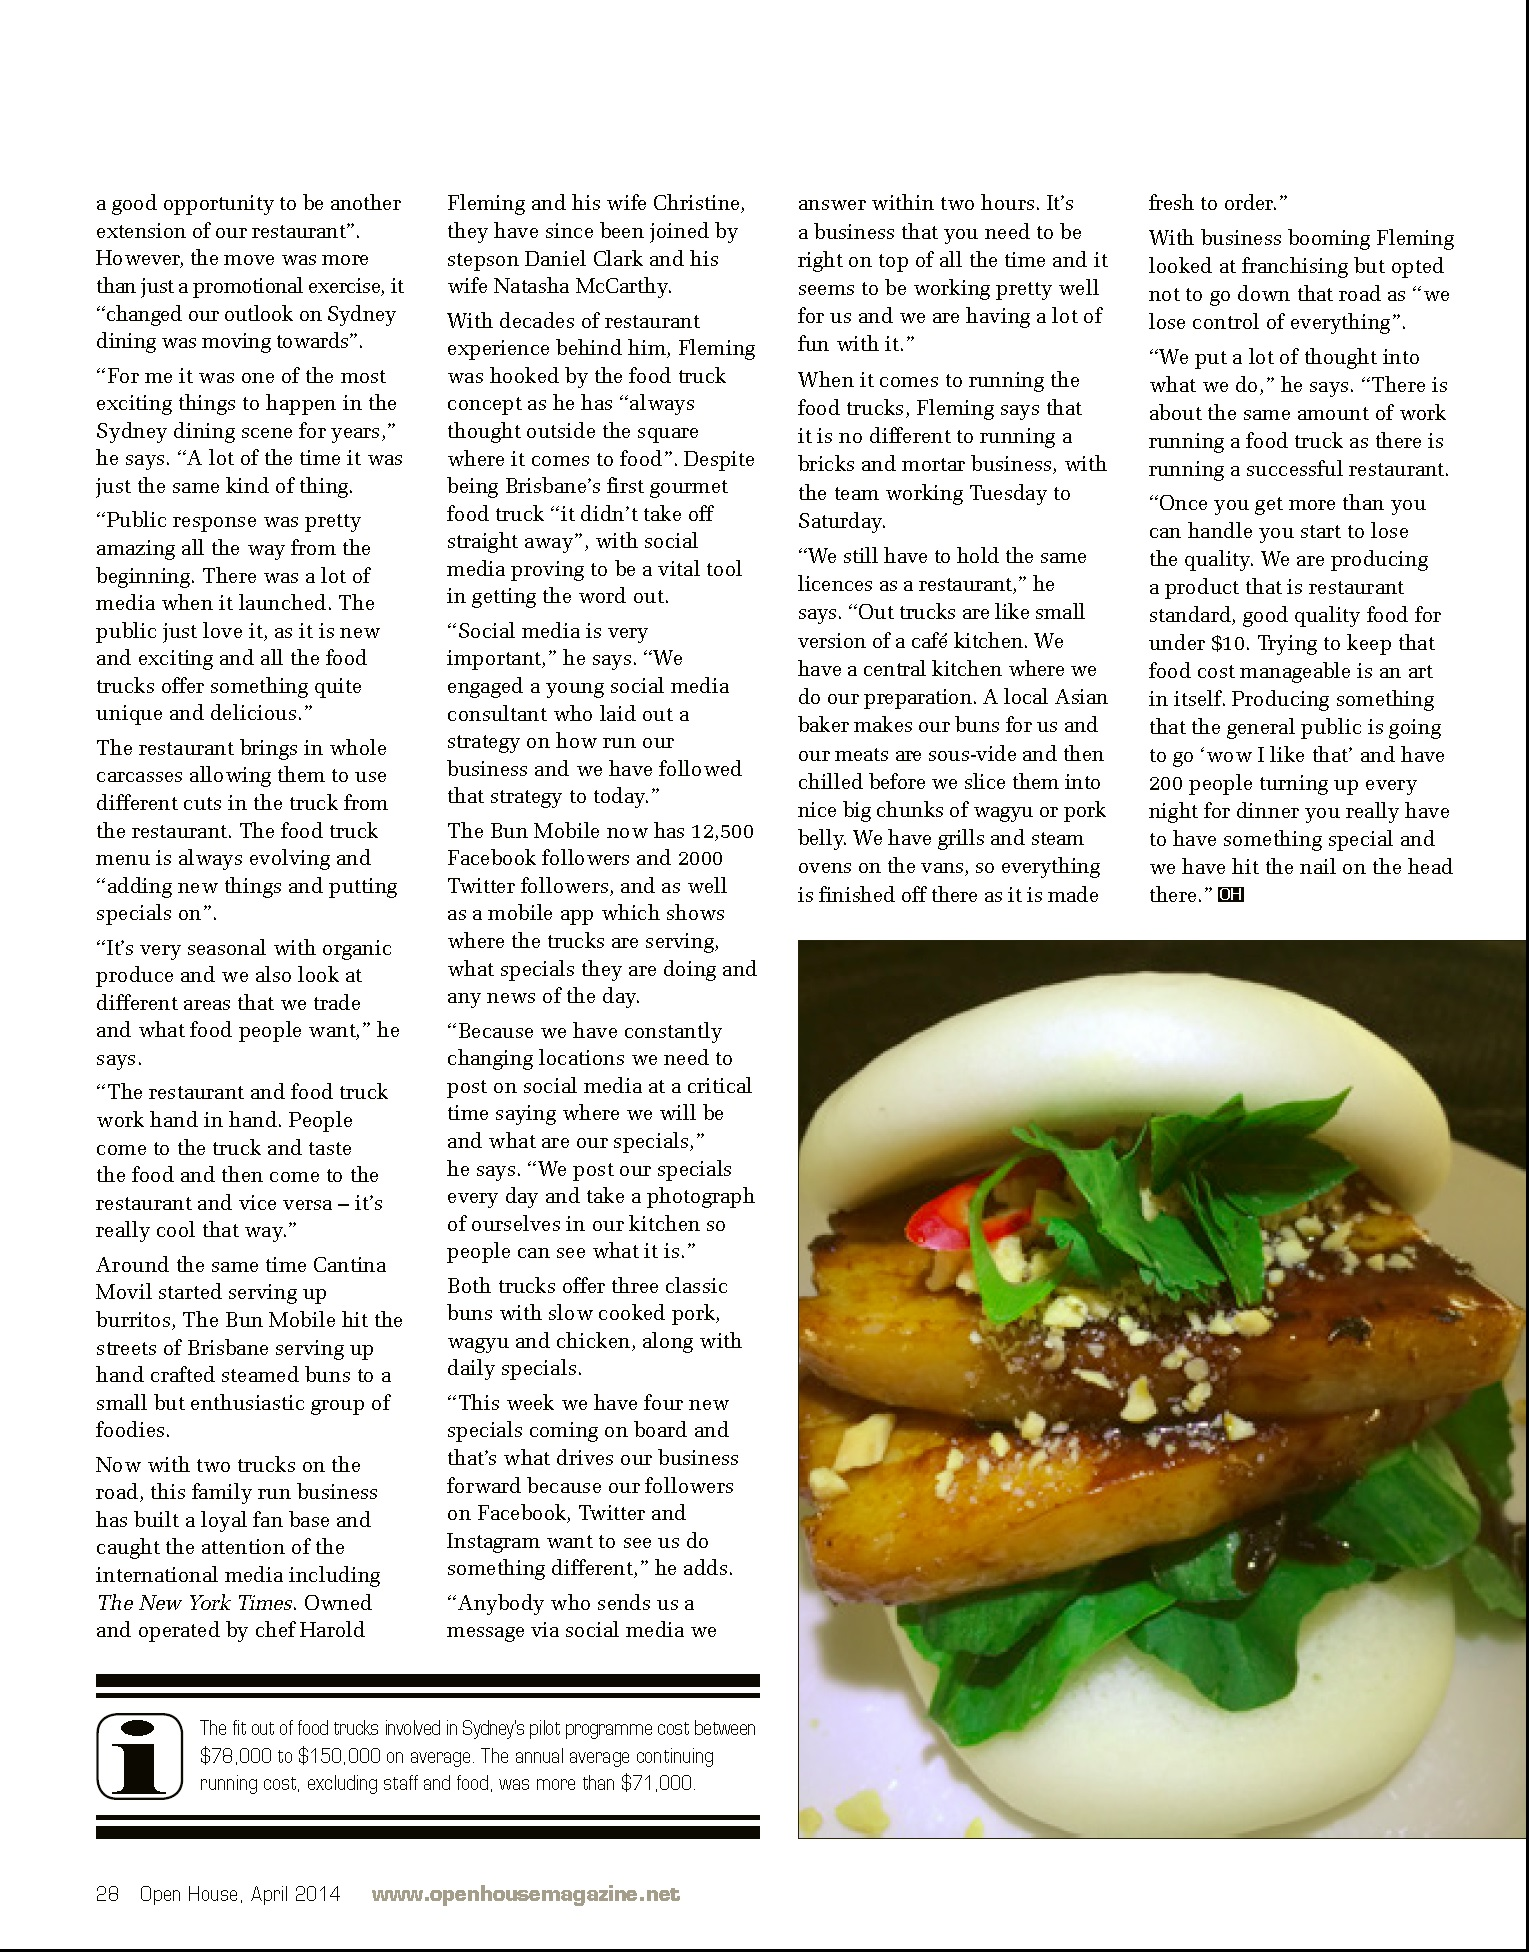 Open House Food Service Magazine PG3